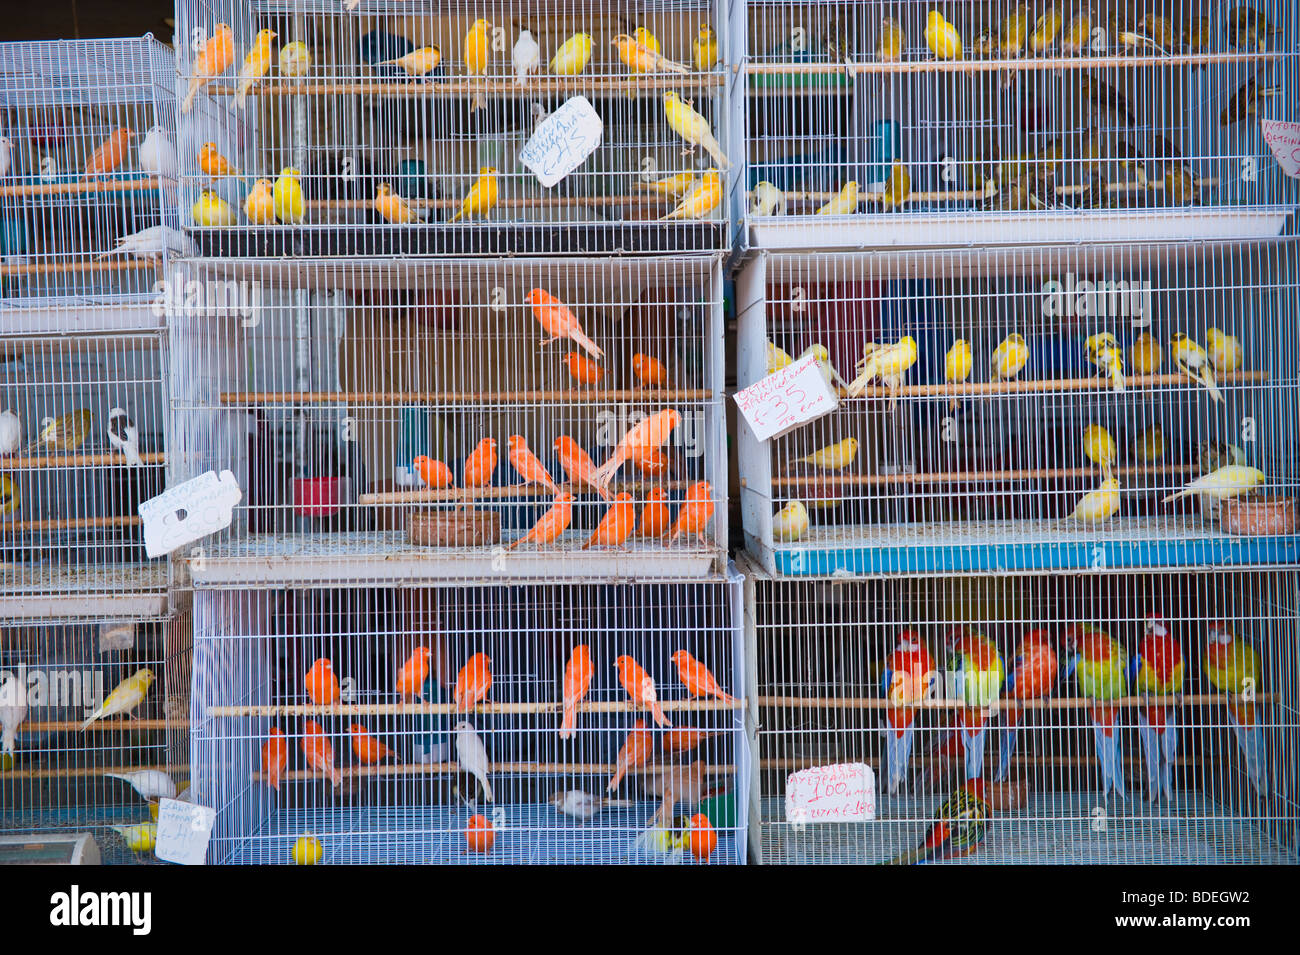 Birds For Sale >> Caged Birds For Sale At Annual Festival Market At St Gerasimos Stock